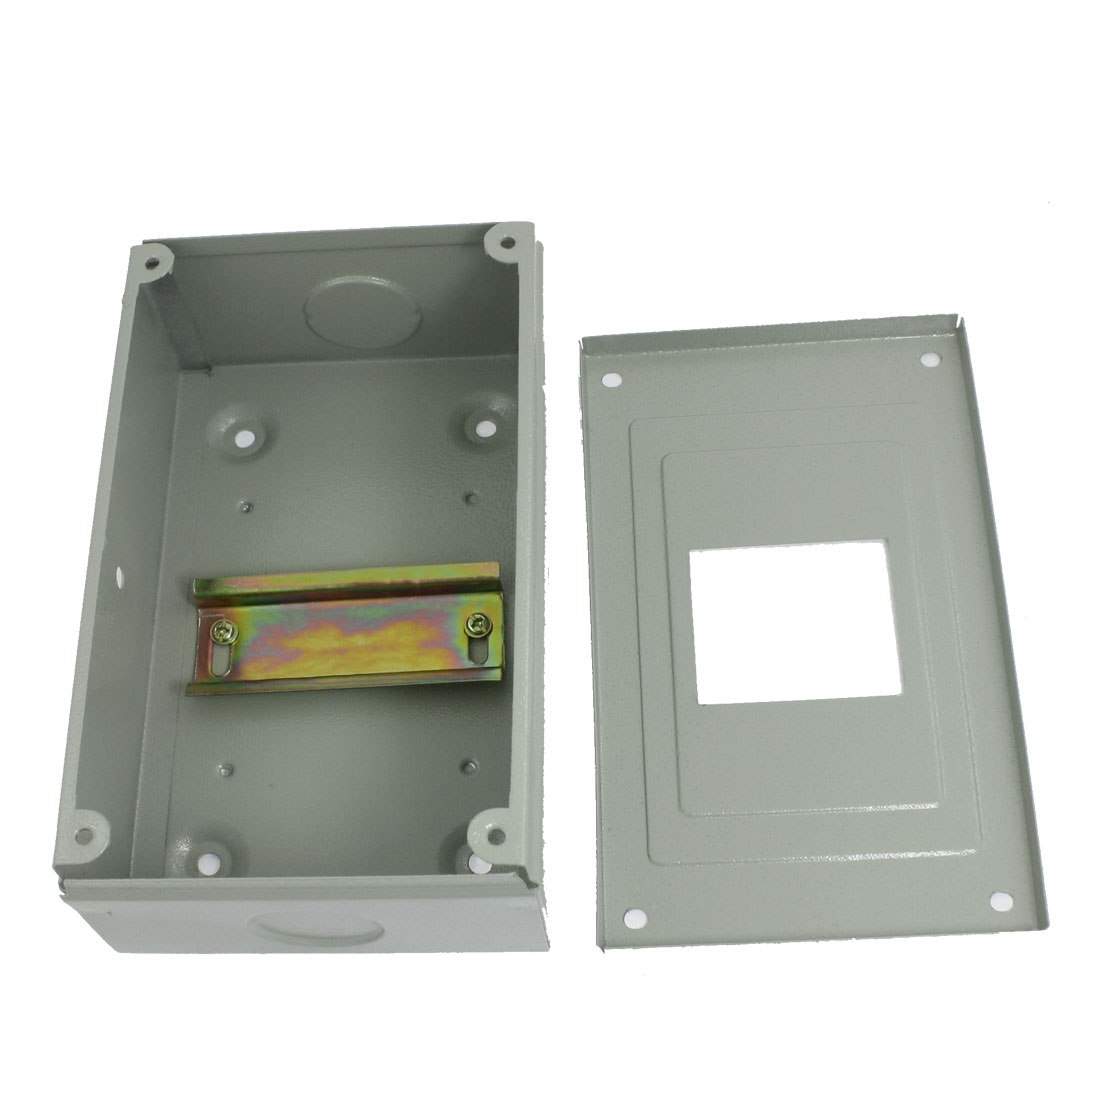 Rectangular Gray Metal Power Supply Distribution Box Guard Cover